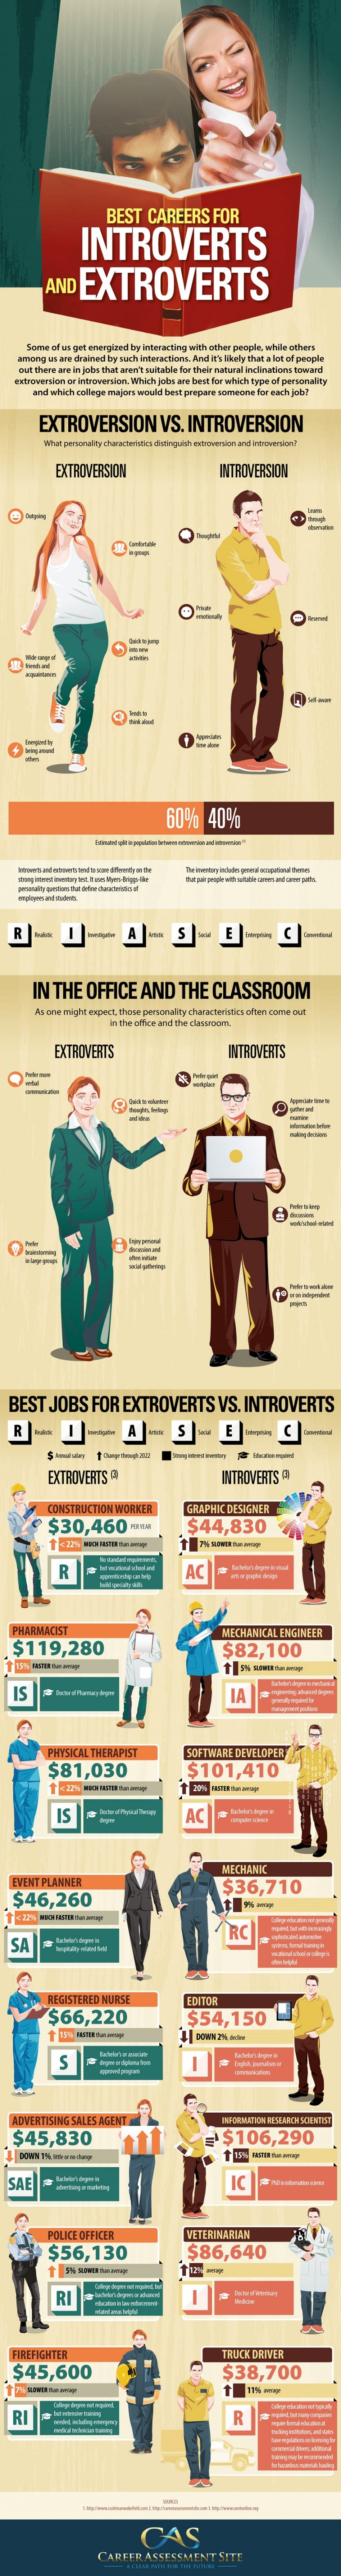 The Best Careers for Extroverts